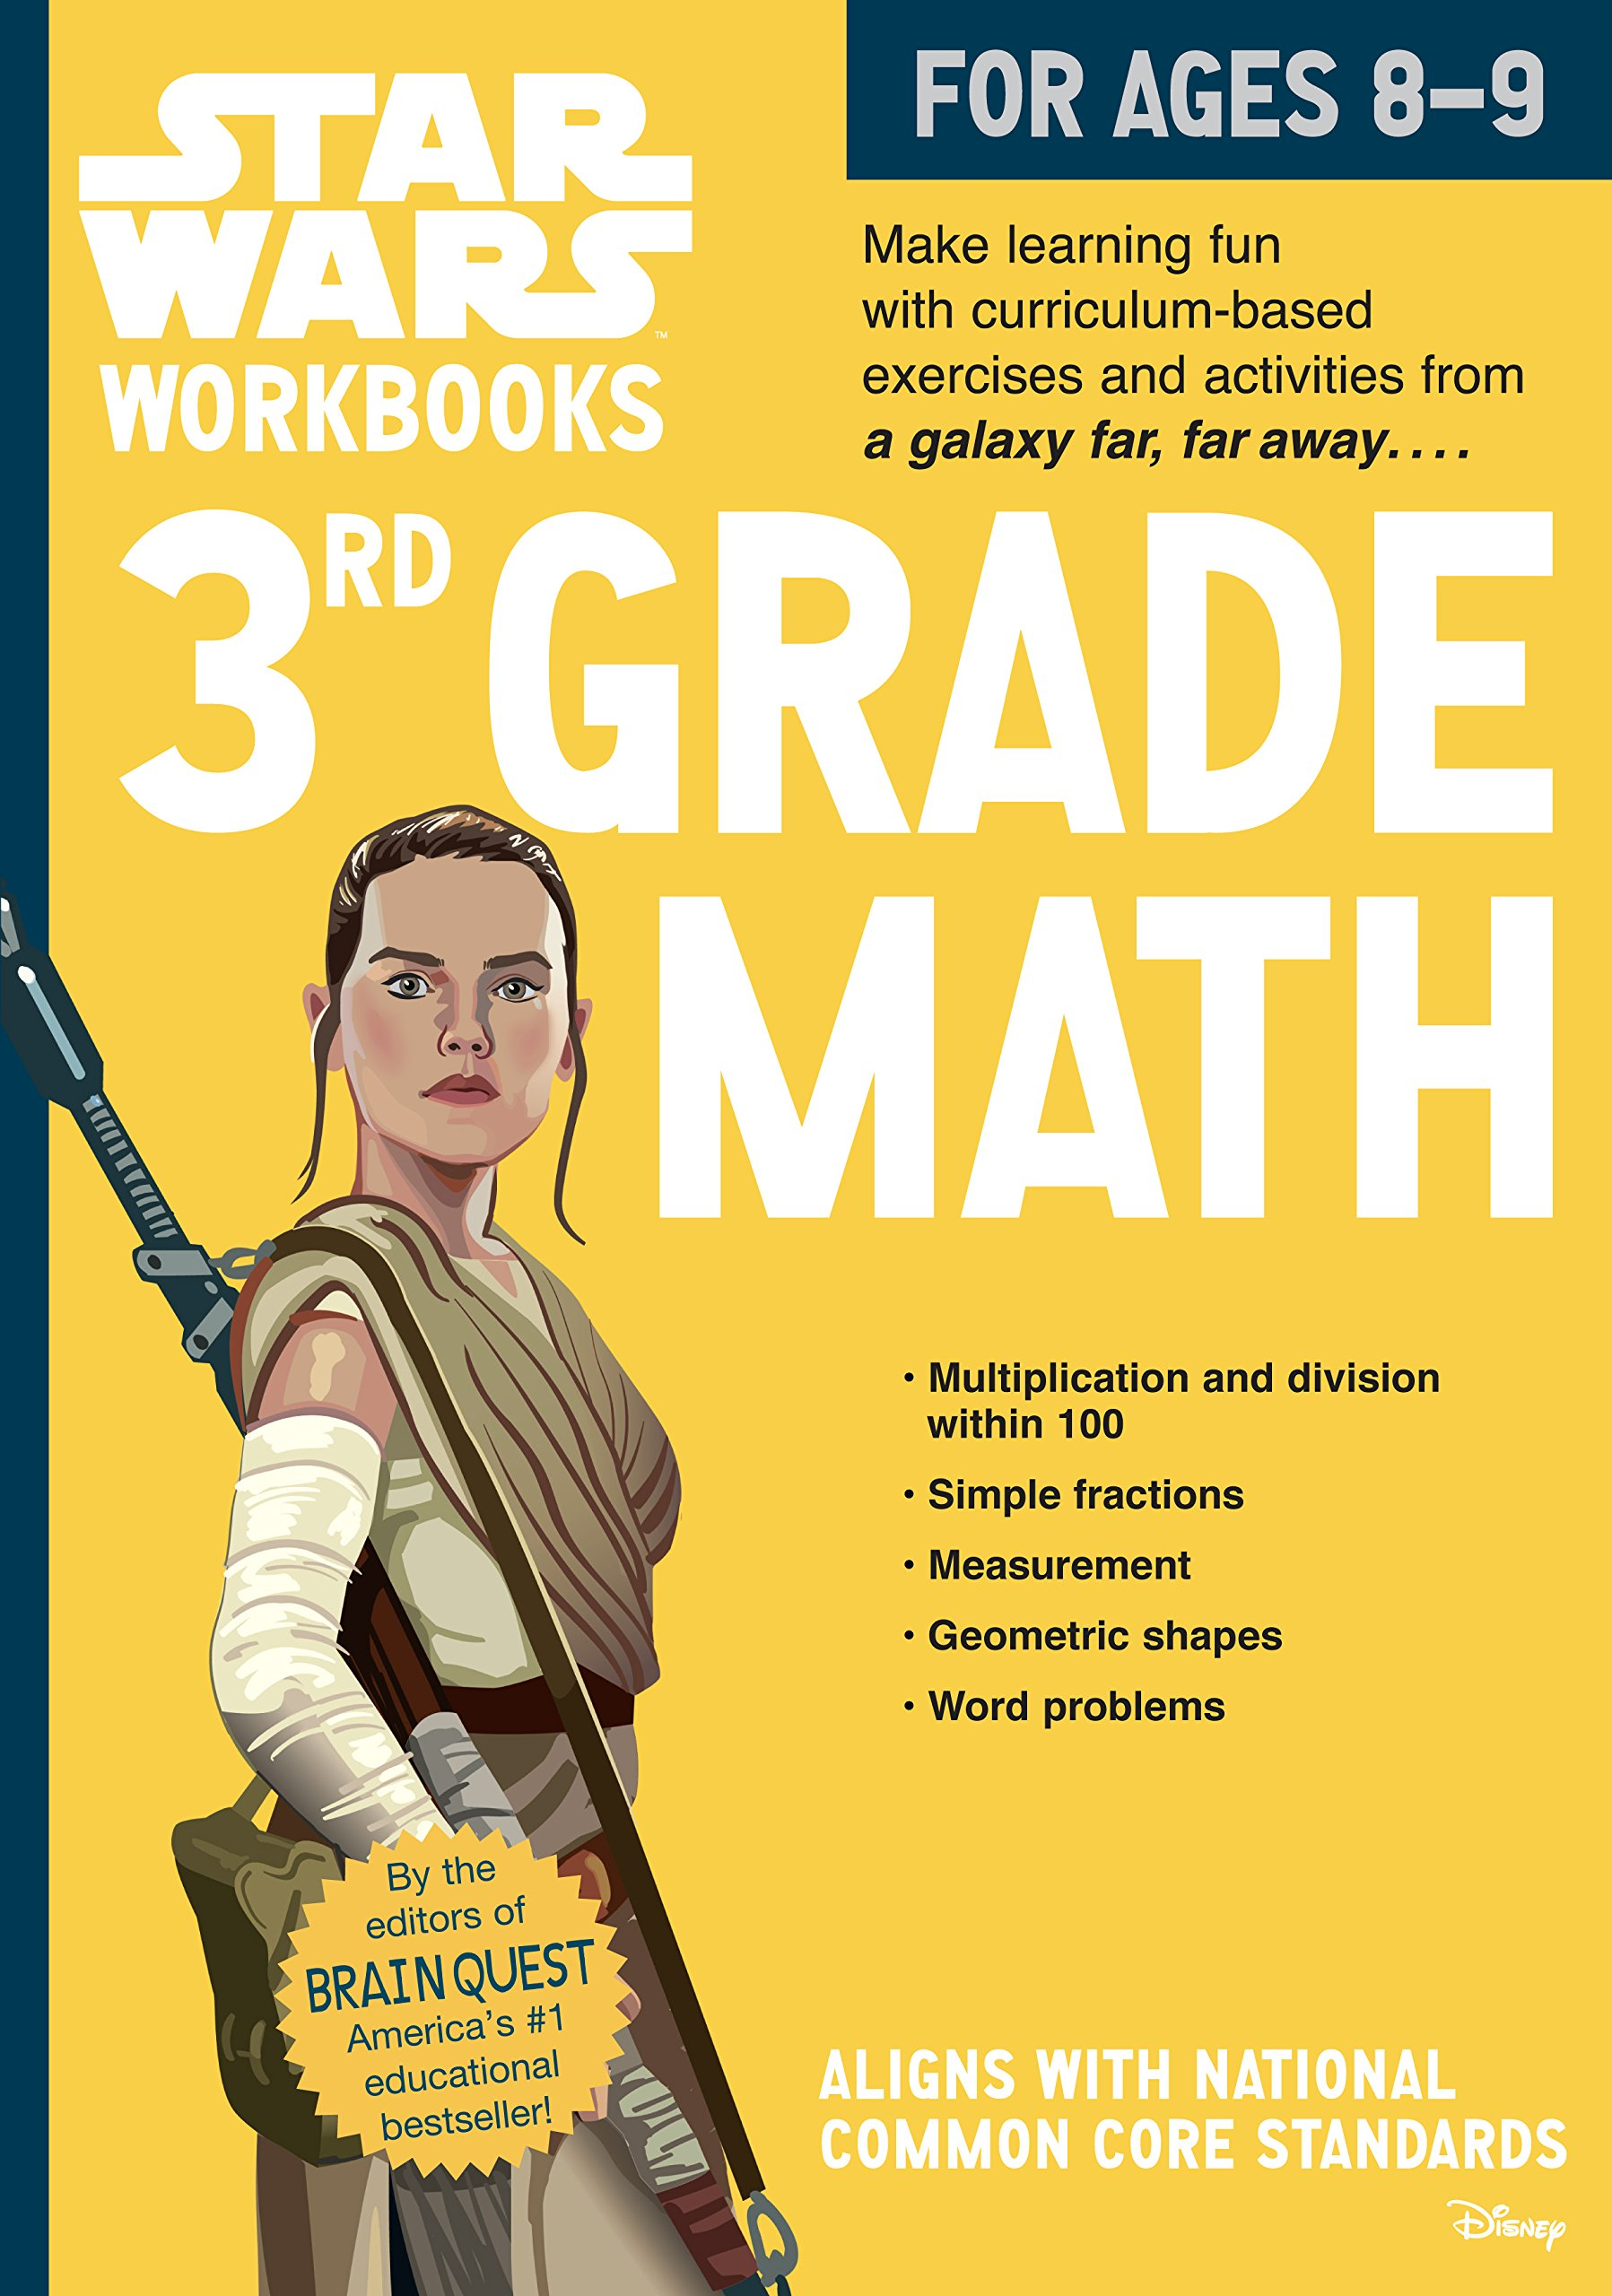 Star Wars Workbooks: 3rd Grade Math